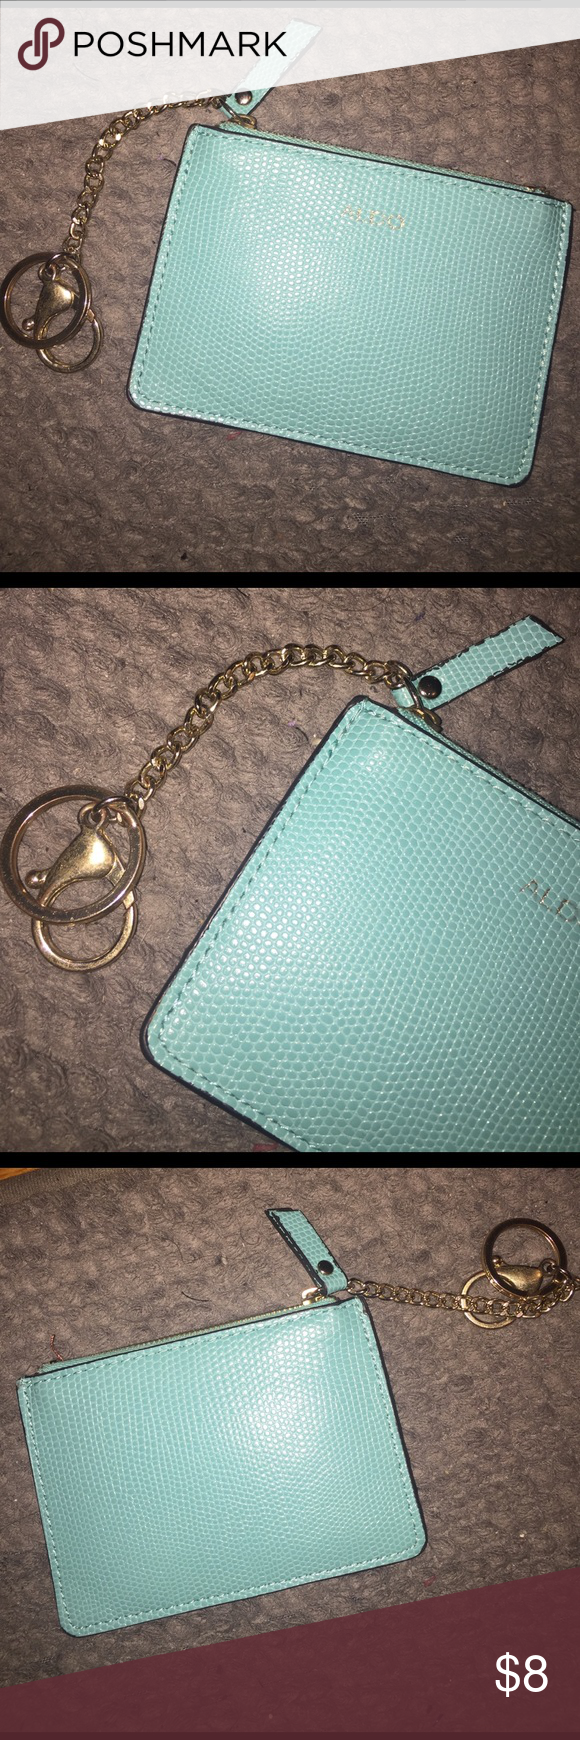 ALDO Turquoise Coin Purse/Pouch 👛 This cute little ALDO coin purse is in good condition. Perfect color for spring! I use it as a little wallet on the go. NO TRADES PLEASE 🙃 Aldo Bags